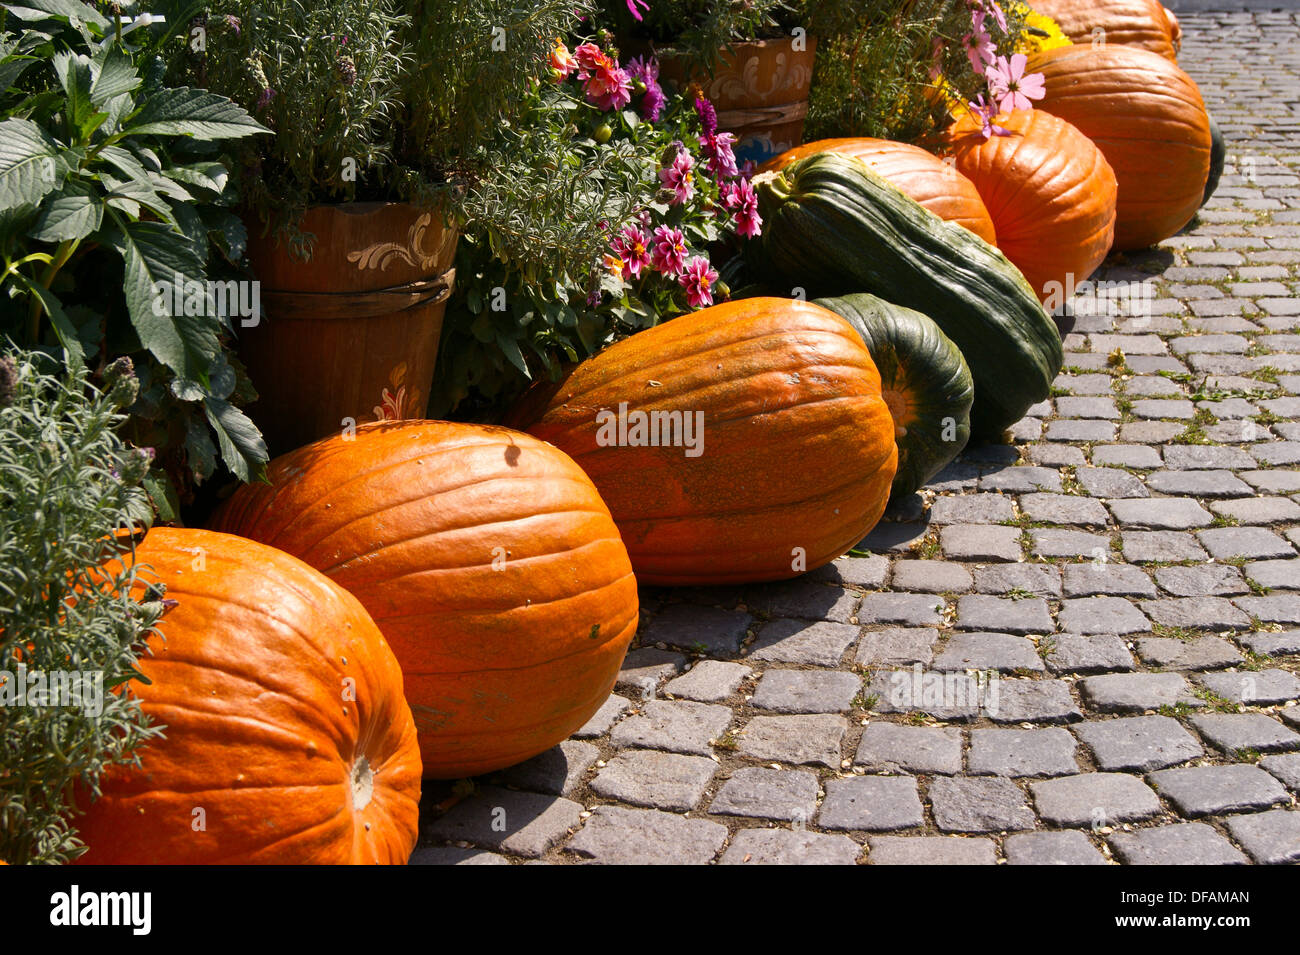 a-display-of-pumpkins-marrows-and-other-large-squashes-ulm-baden-wuerttemberg-DFAMAN.jpg